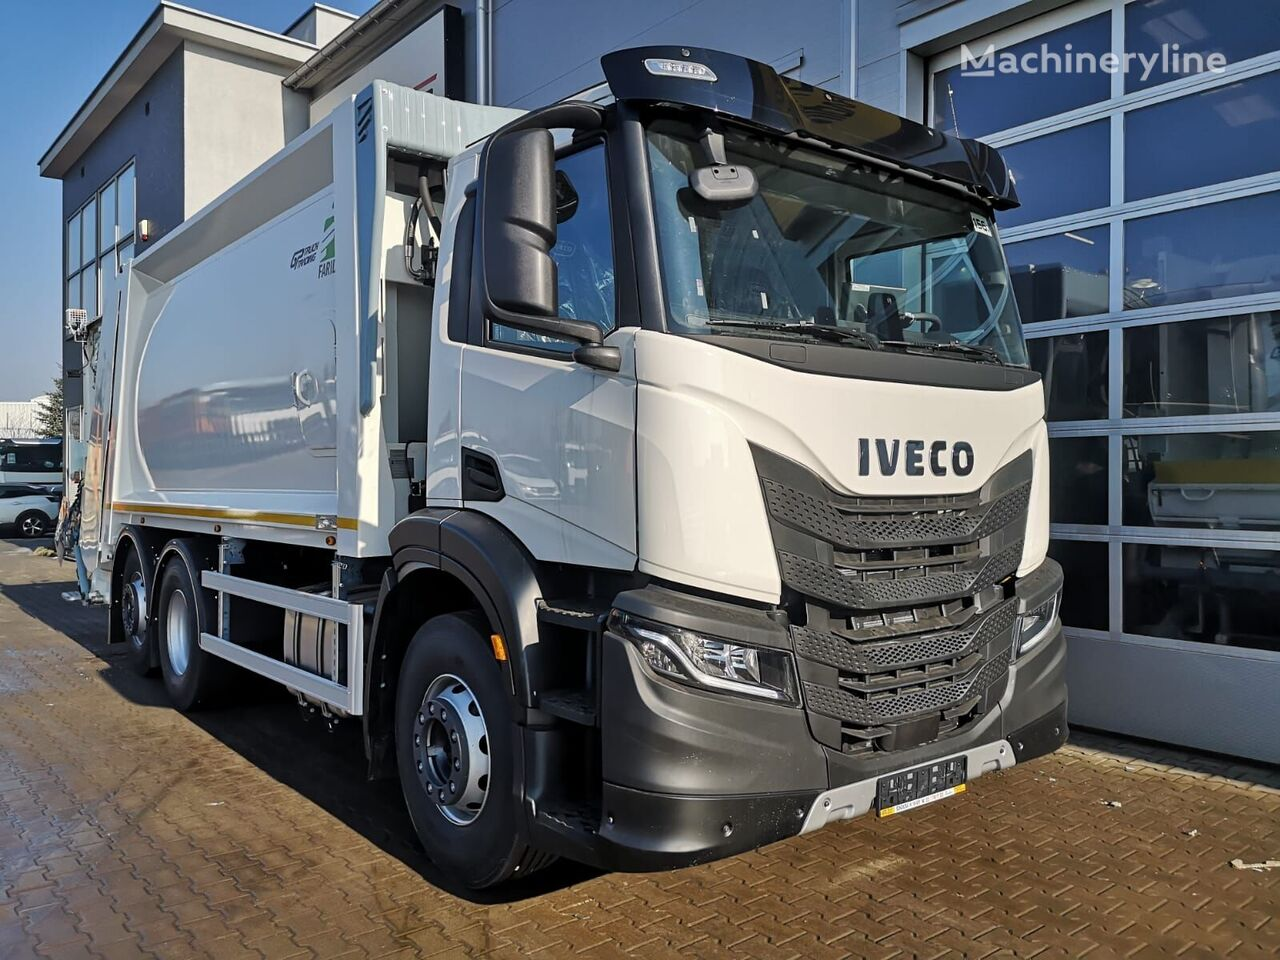 new IVECO S Way garbage truck